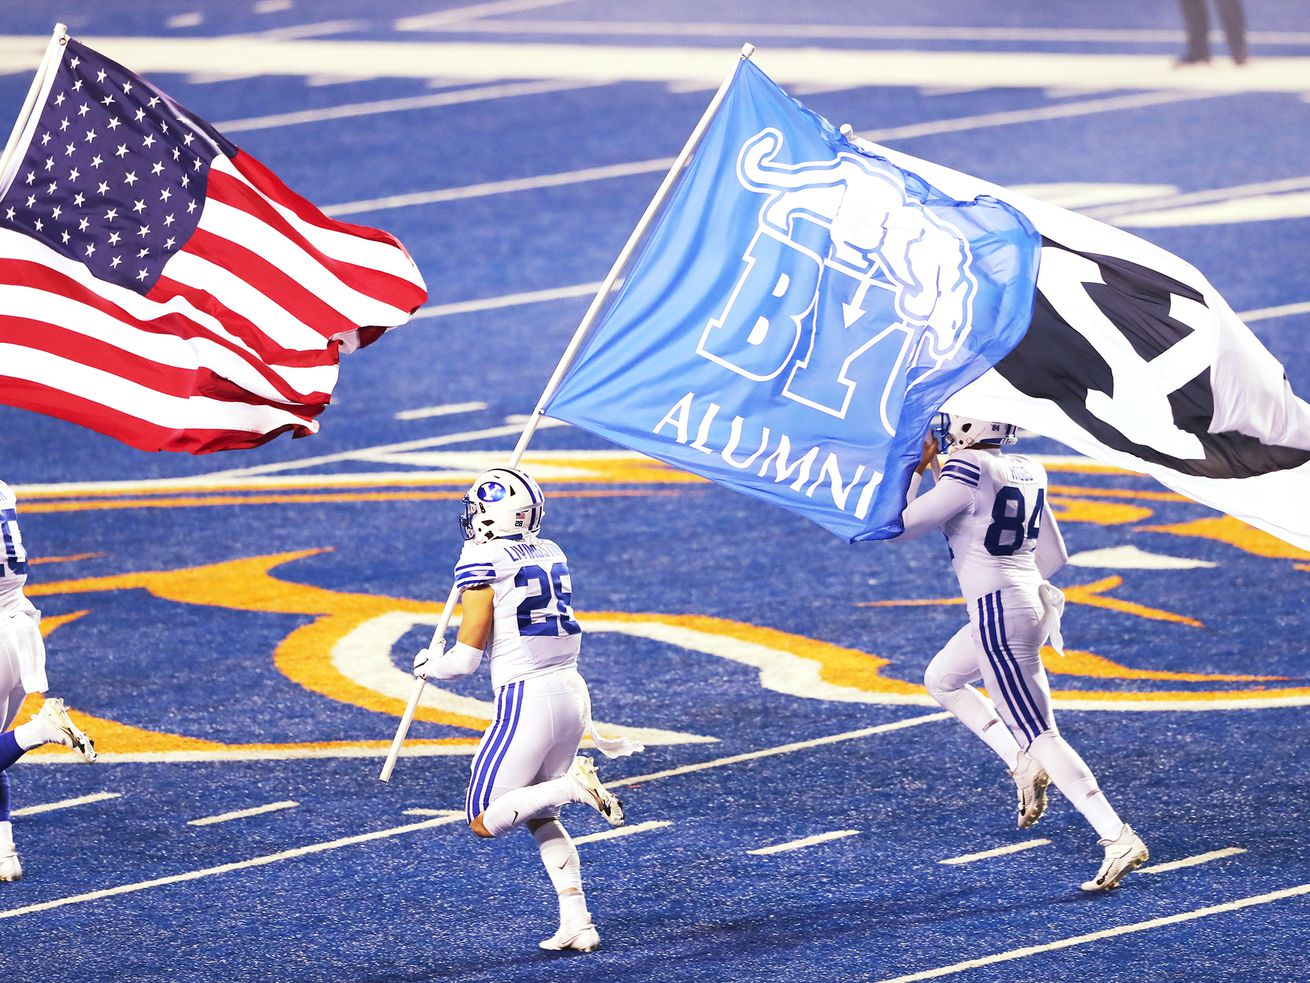 BYU defensive back Morgan Pyper (10), BYU defensive back Hayden Livingston (28) and BYU long snapper Austin Riggs (84) carry the flags out as BYU and Boise State play a college football game at Albertsons Stadium in Boise on Friday, Nov. 6, 2020.